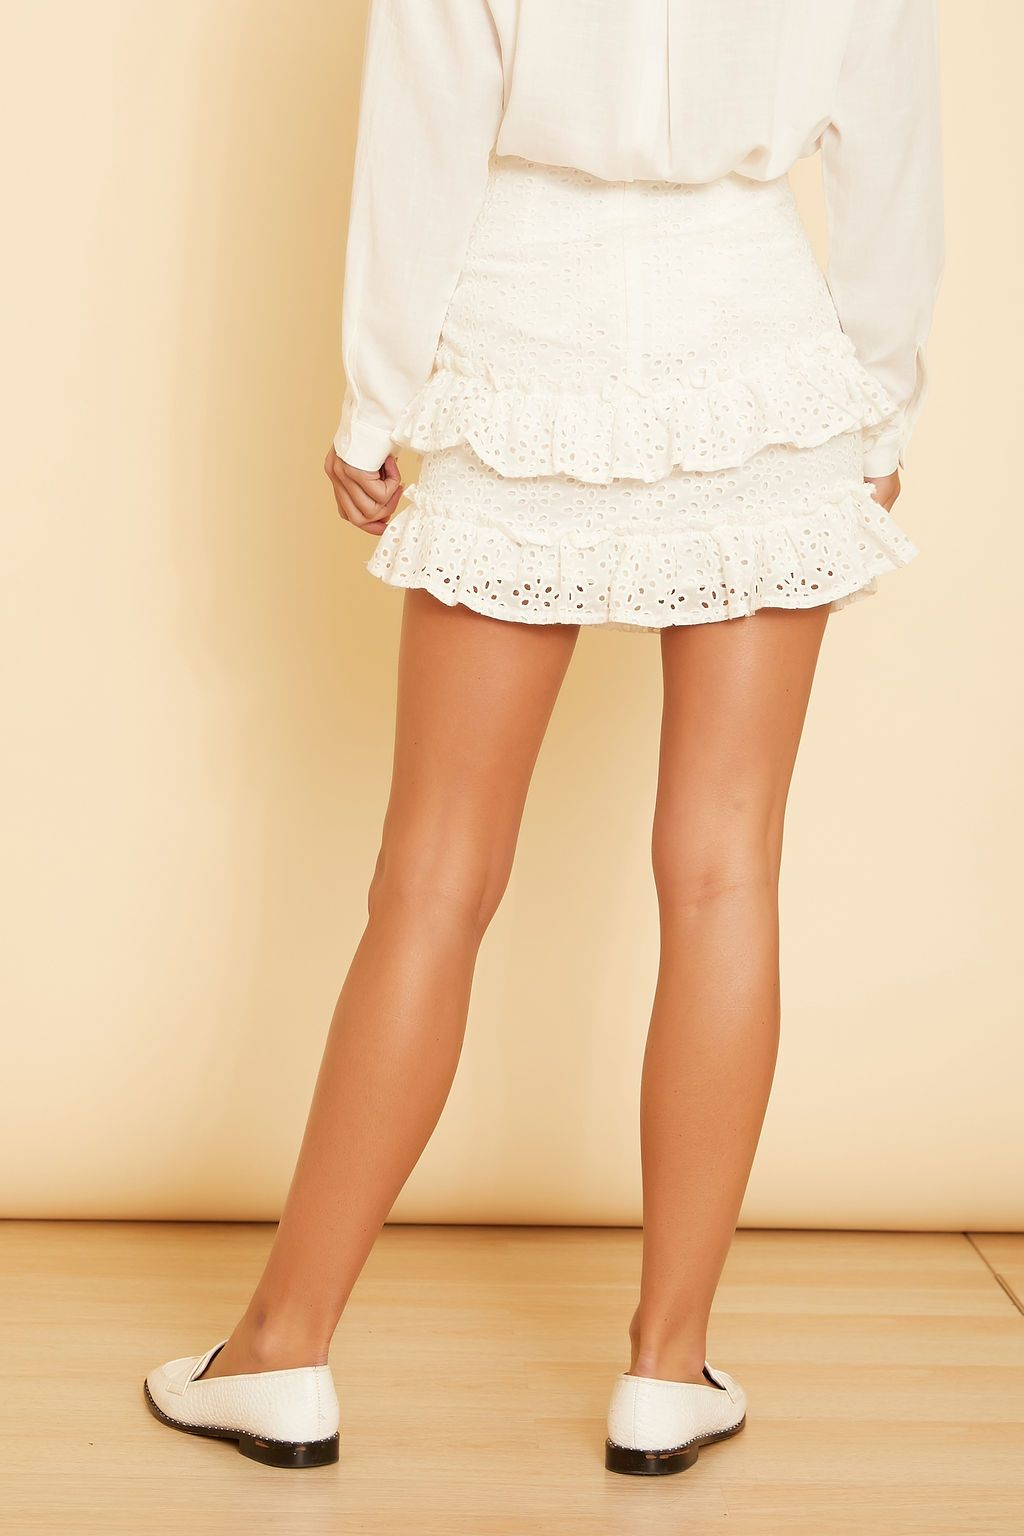 Alora Eyelet Mini Skirt - wearNYLA